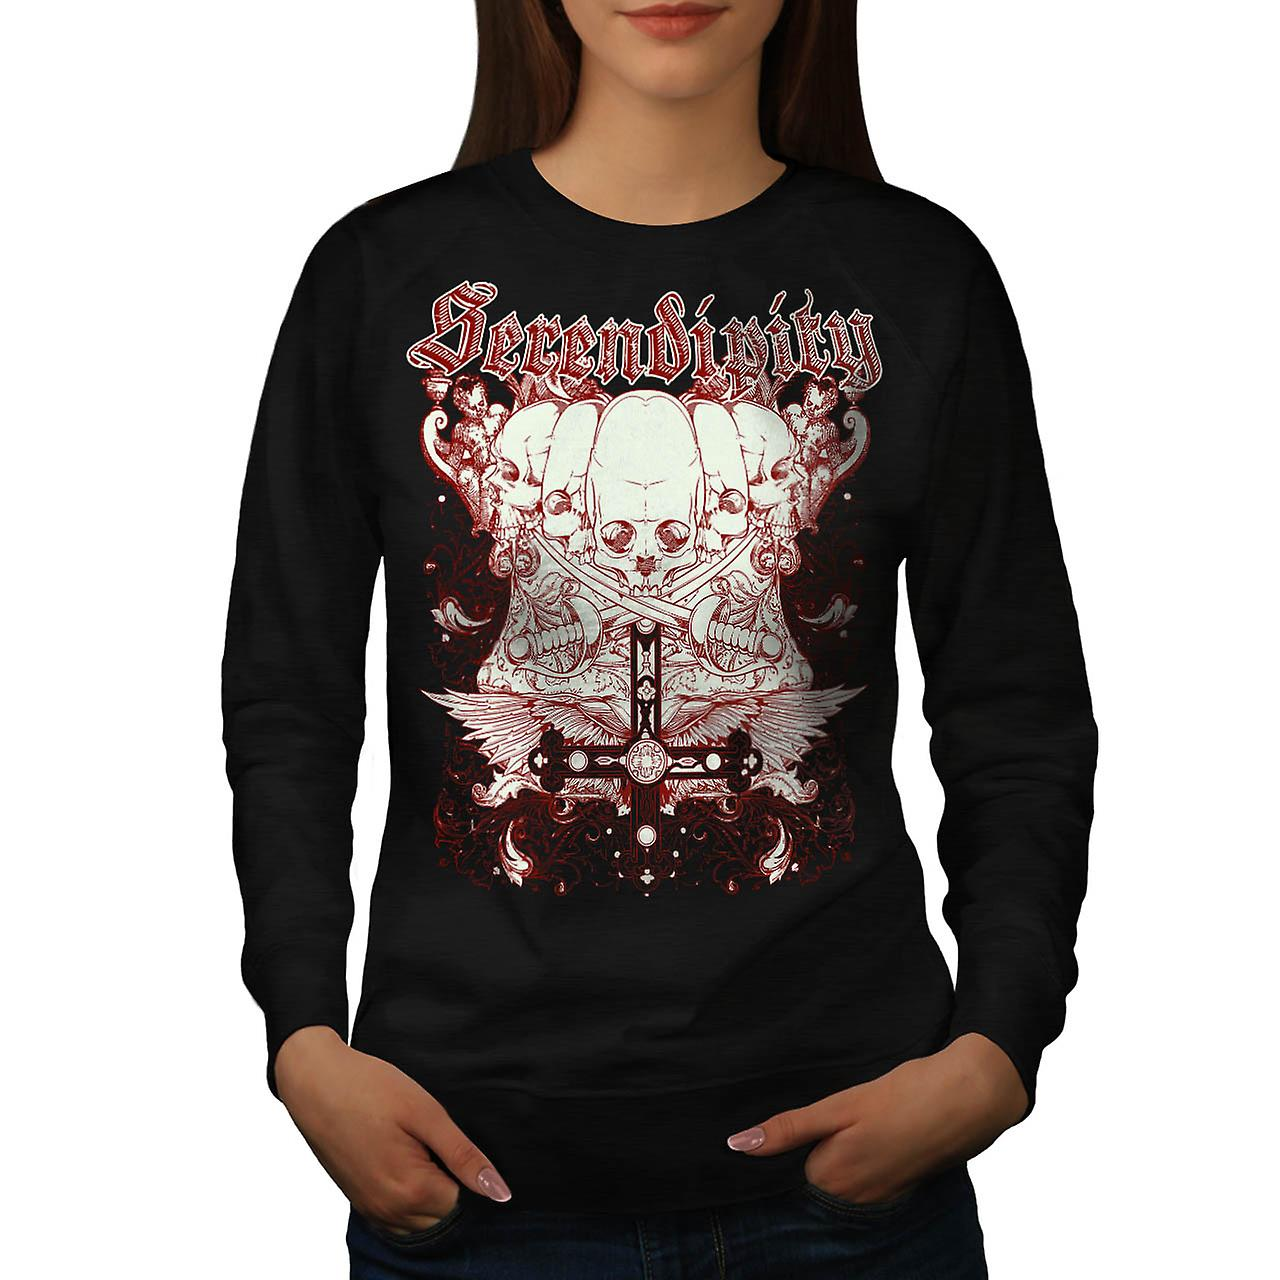 Serendipity Tombstone Grave Yard Women Black Sweatshirt | Wellcoda